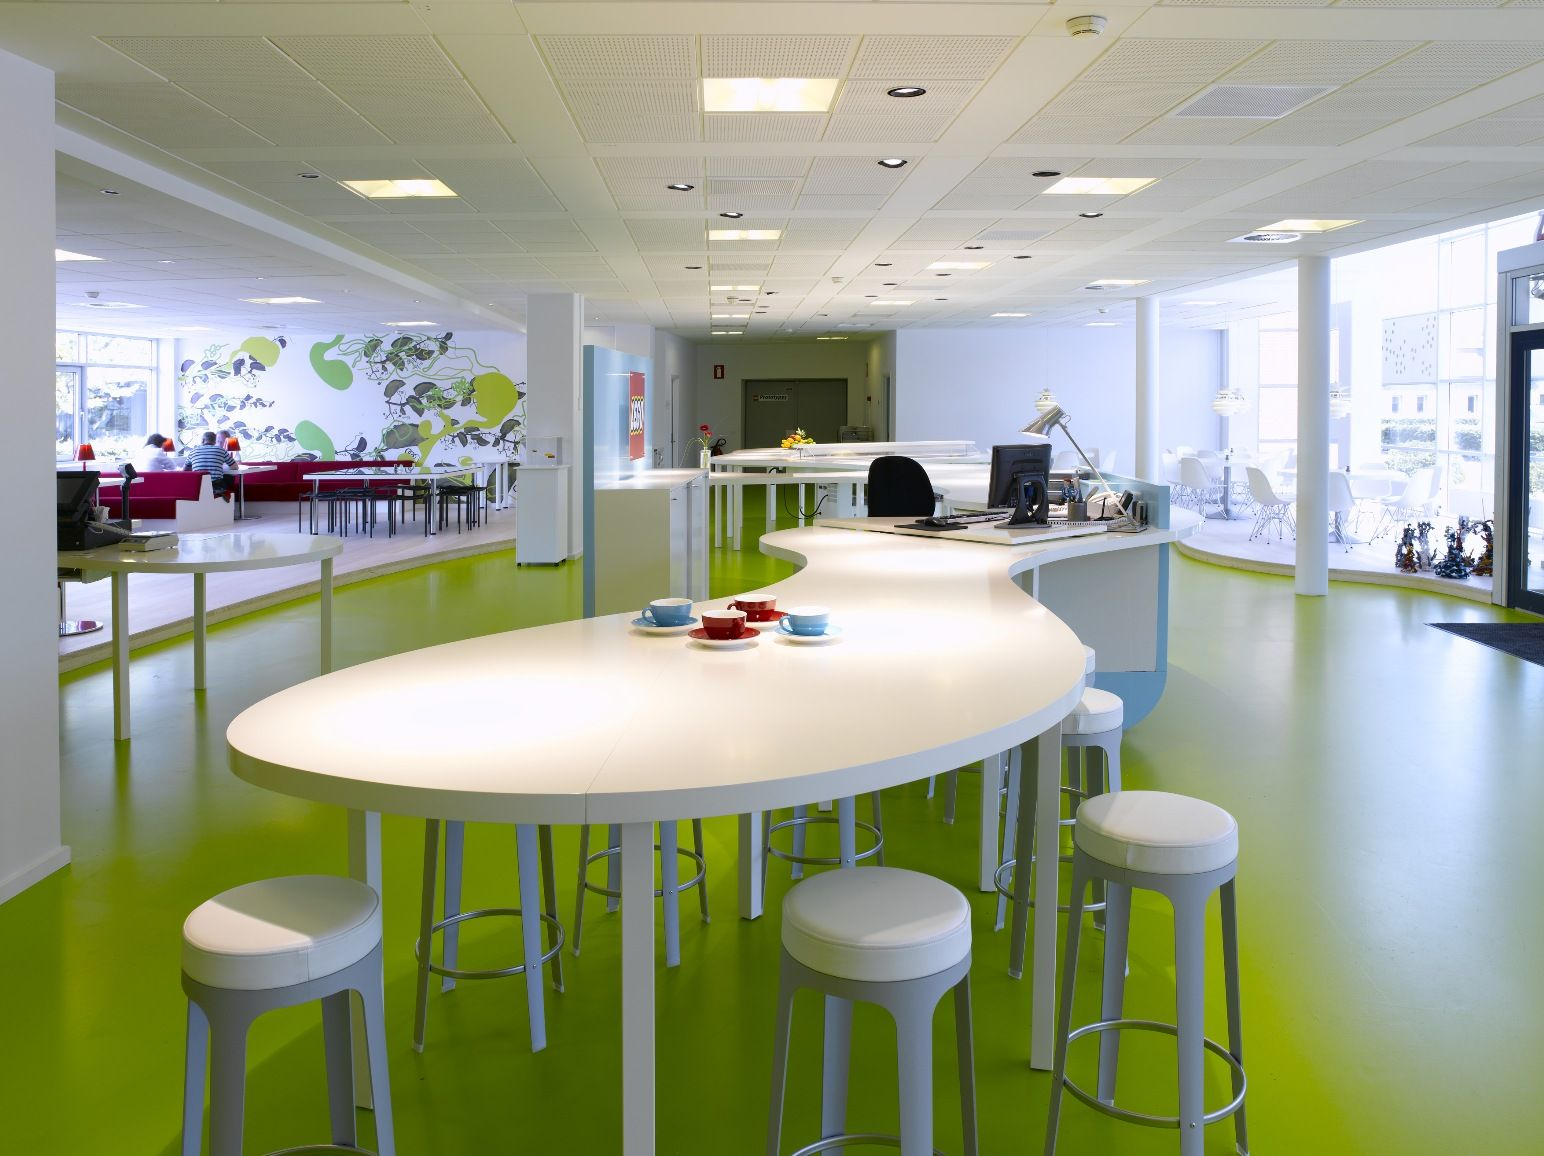 awesome office designs. Interior, Breathtaking Office Design With Unique White Desk And Cool Stools Also Beautiful Ceiling Using Green Floor: Awesome Designs S